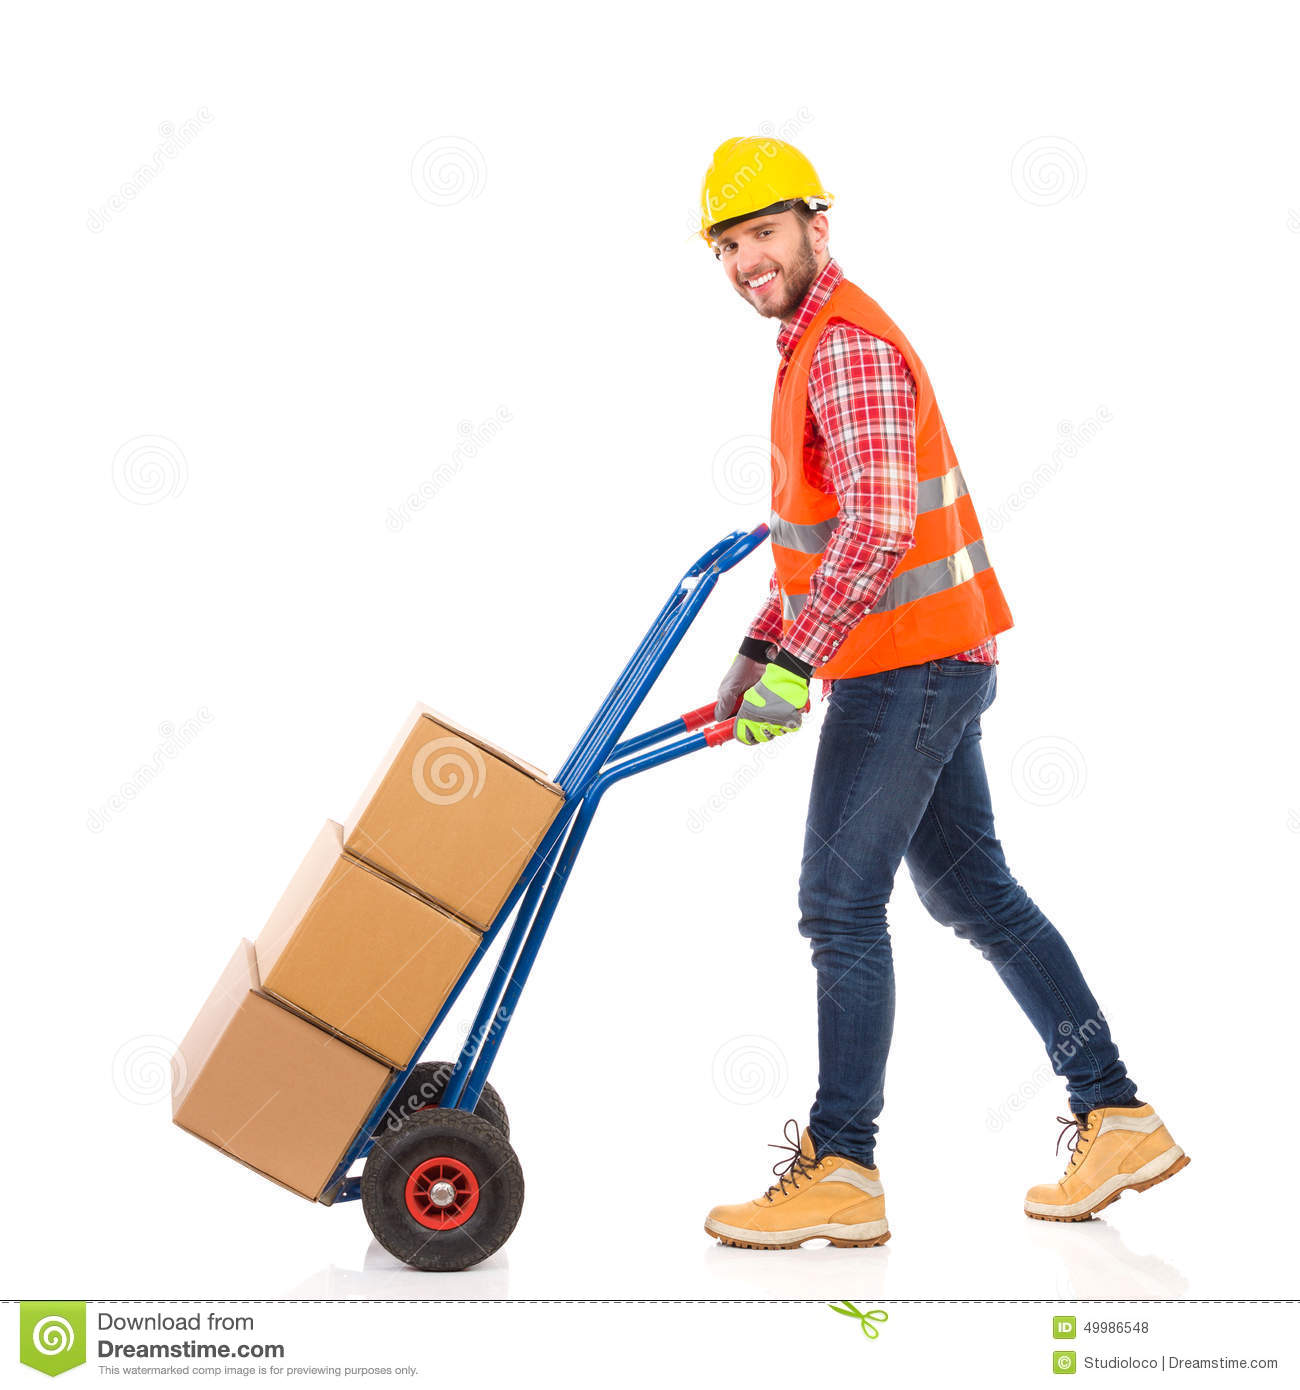 Walking Delivery Person Stock Photo - Image: 49986548